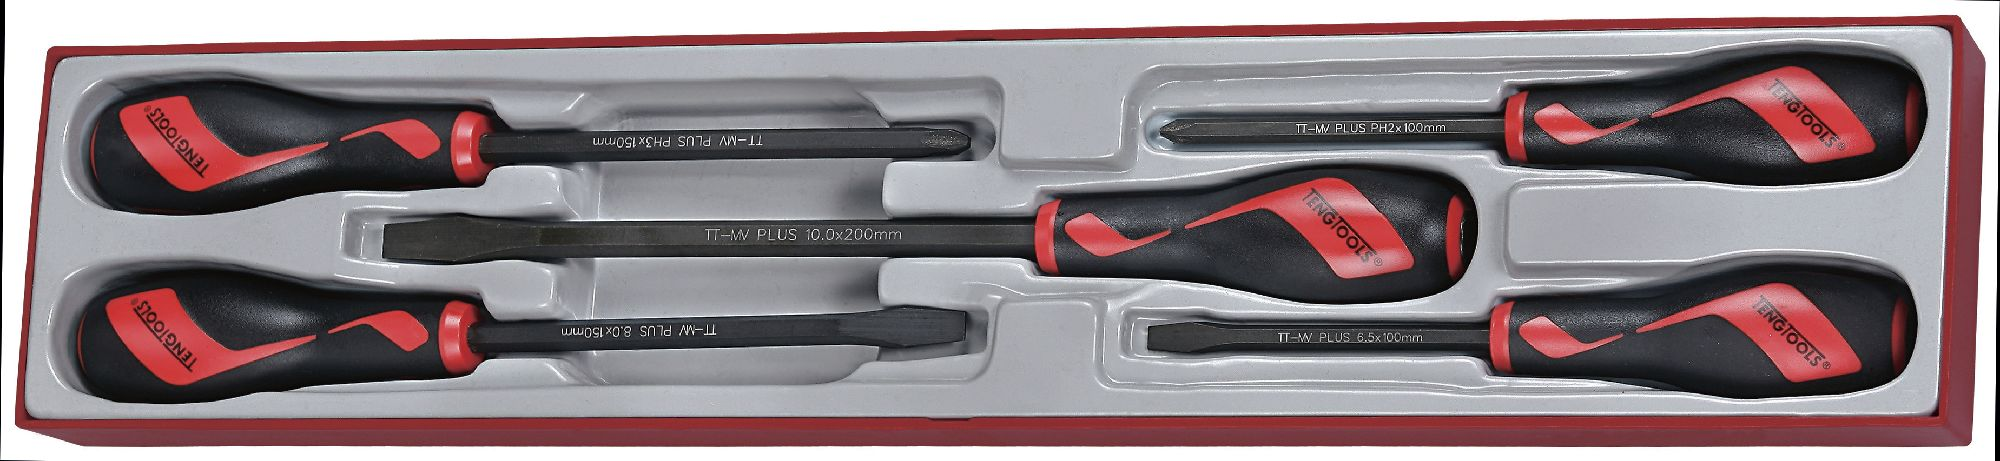 TTXMDTN | Tools in PS trays | Tools in trays | Screwdrivers